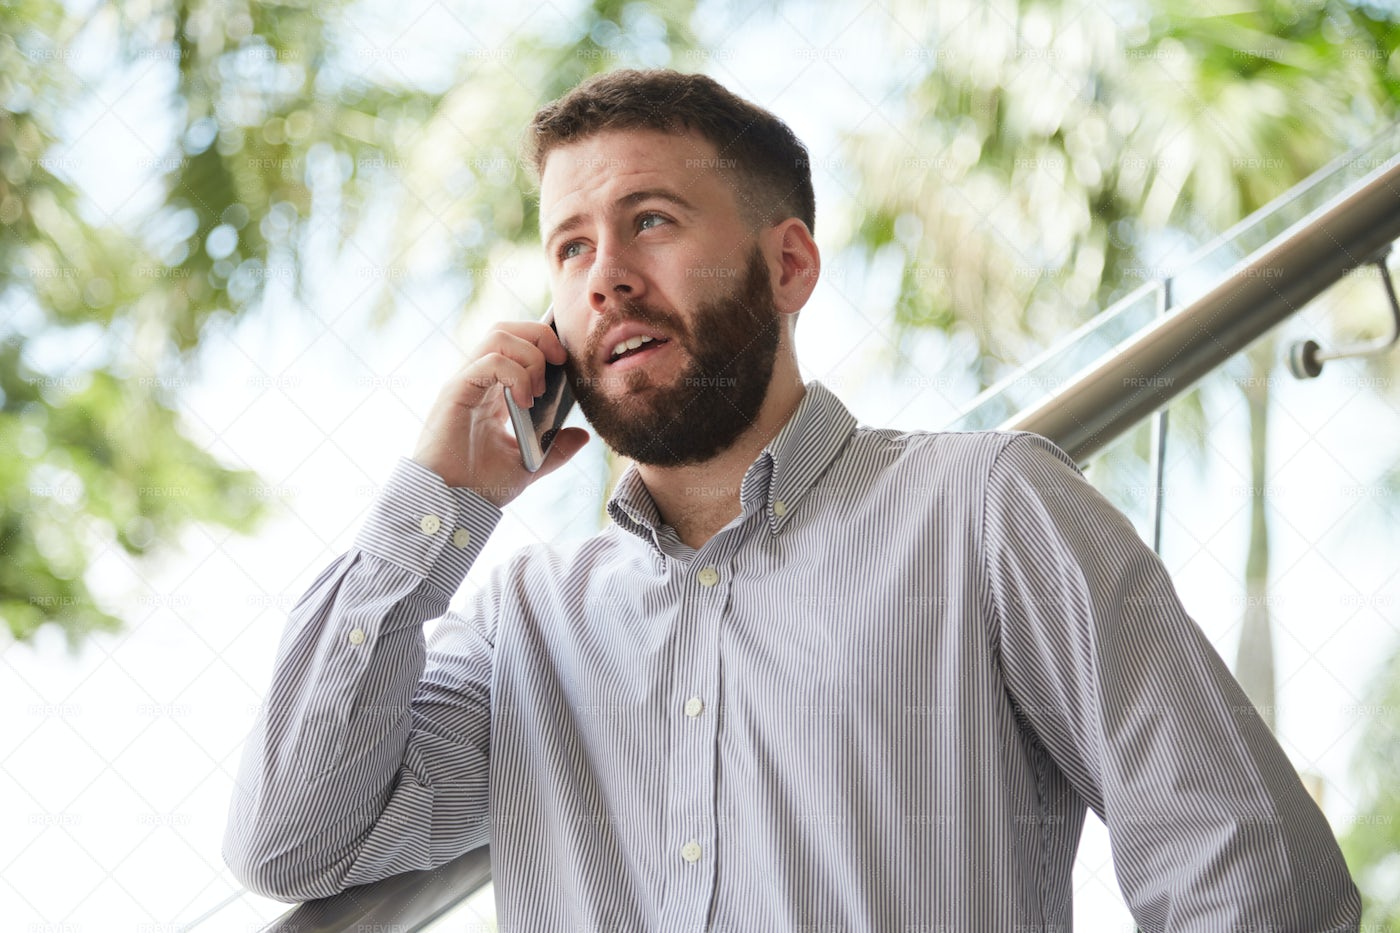 Businessman Using Mobile Phone For: Stock Photos